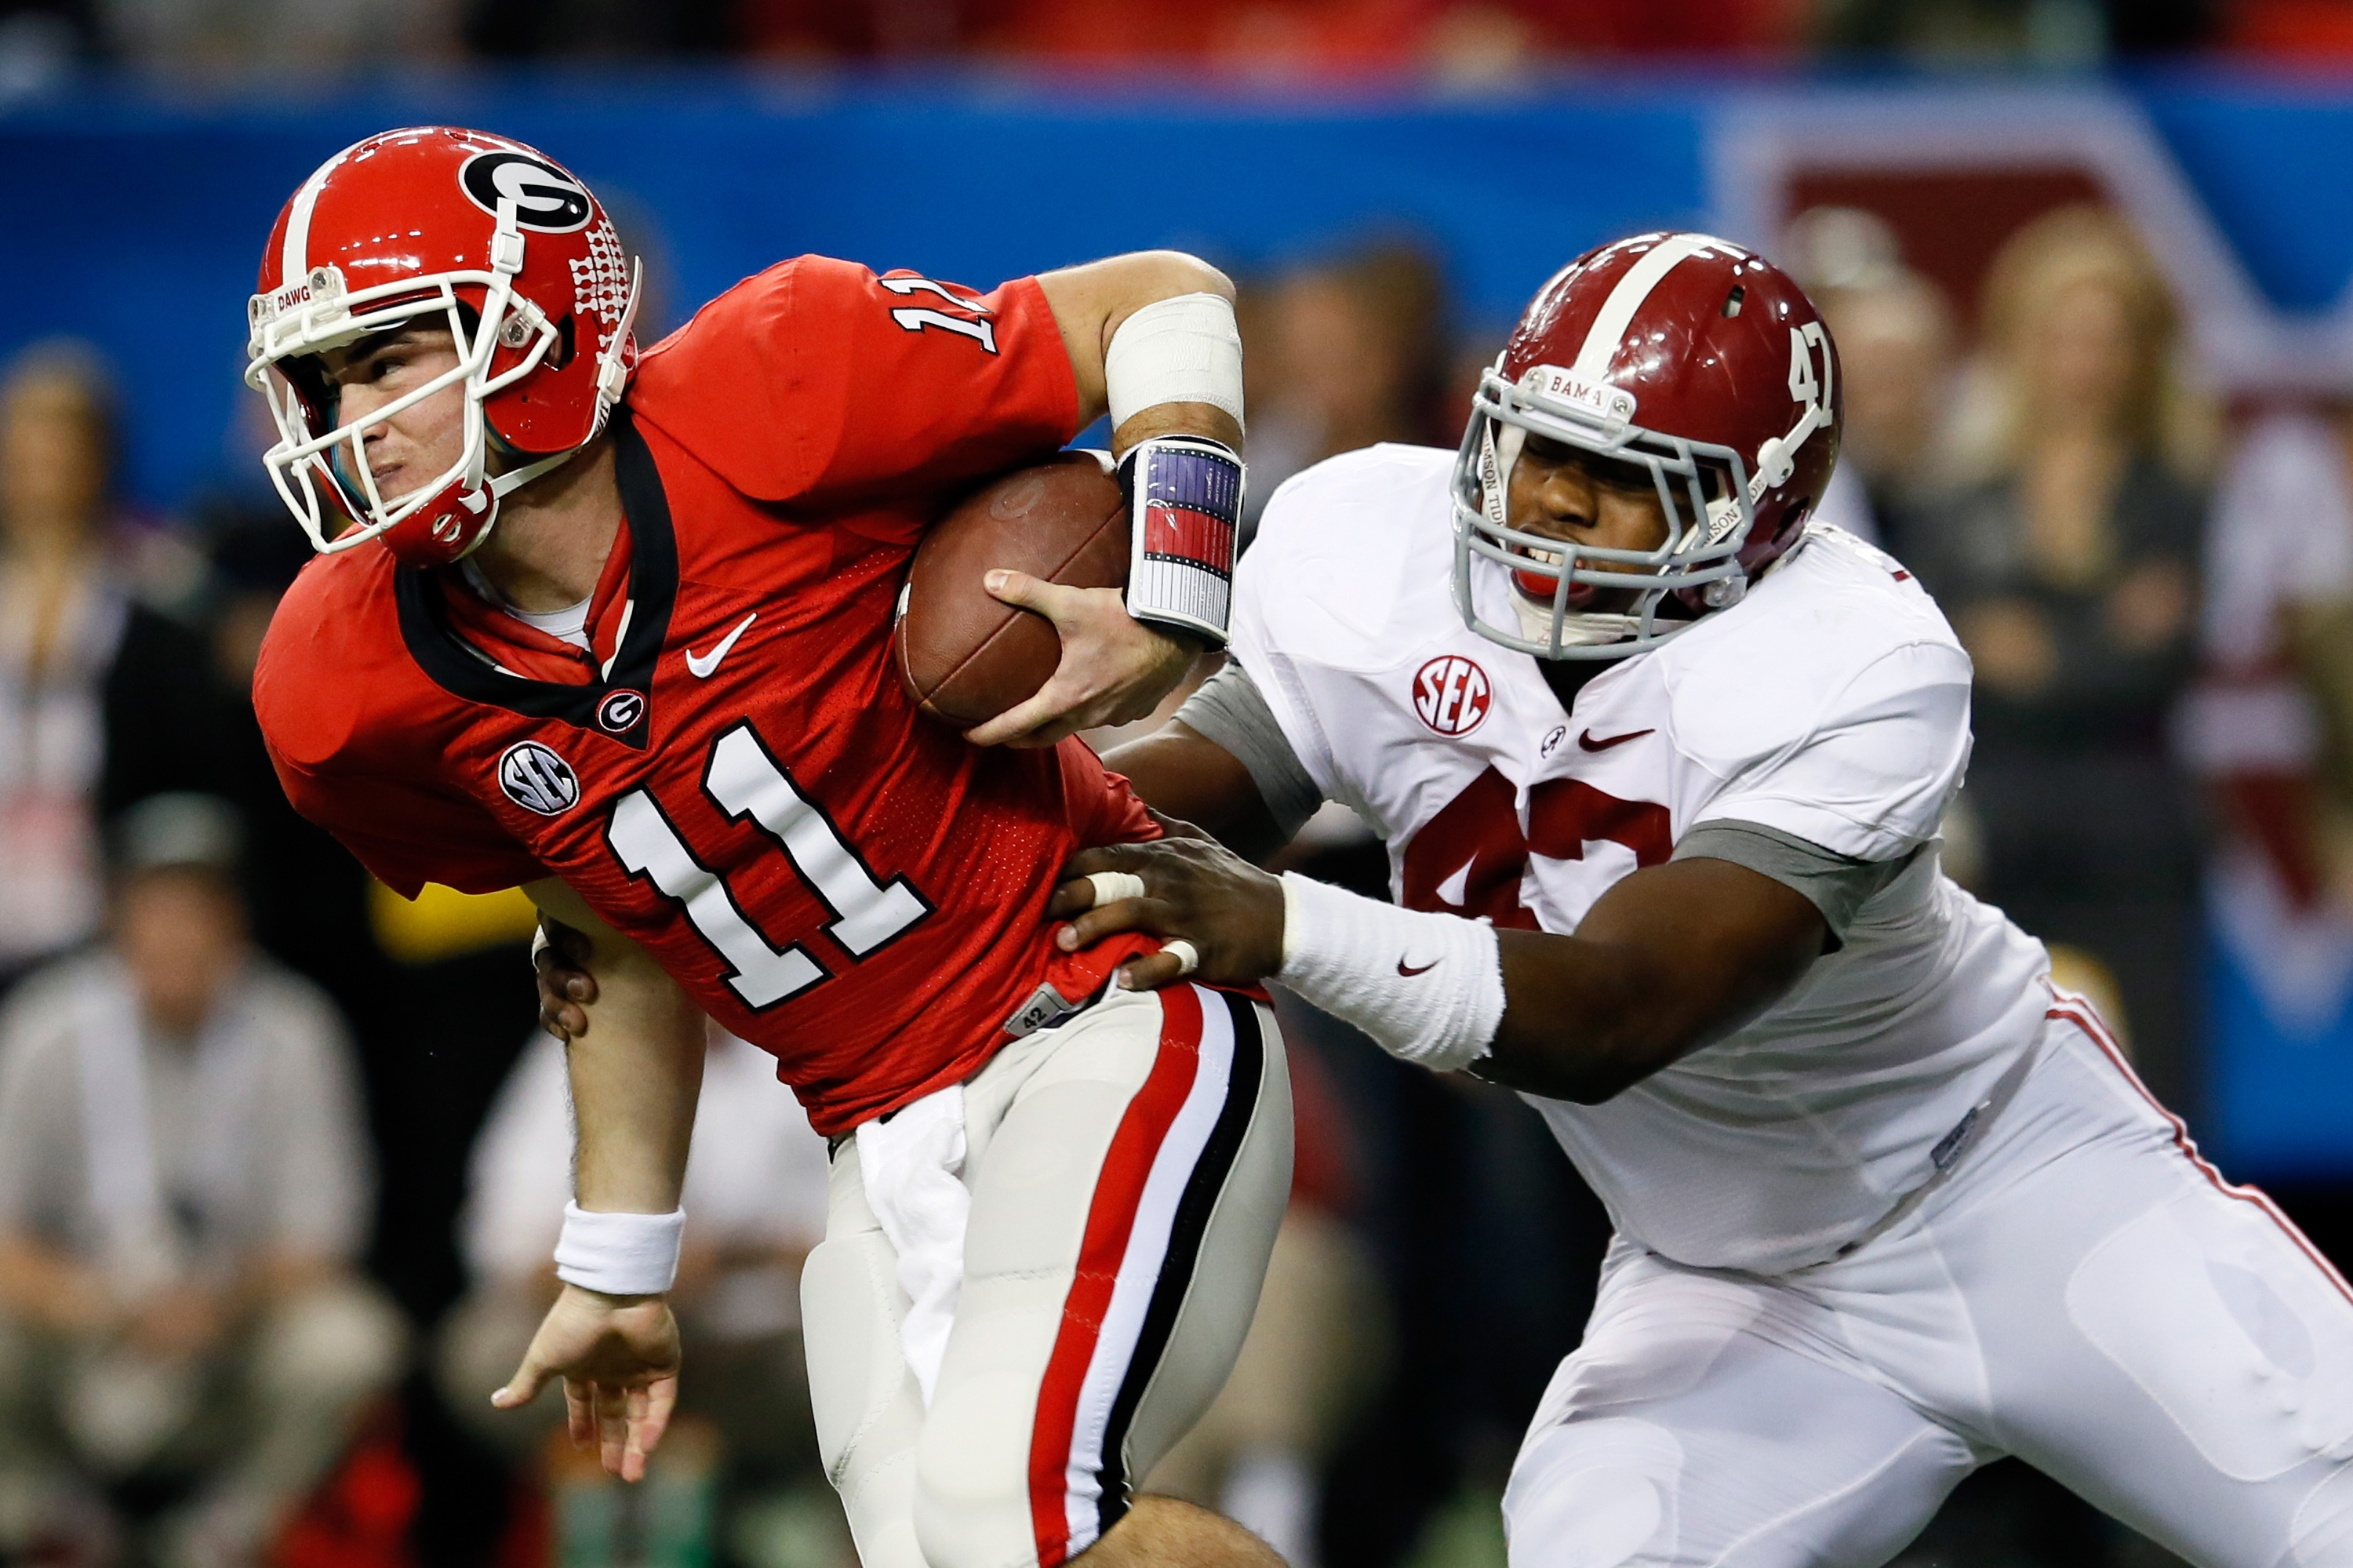 Aaron Murray is hoping to get the memory of Georgia's loss to Alabama off his back. (Getty)